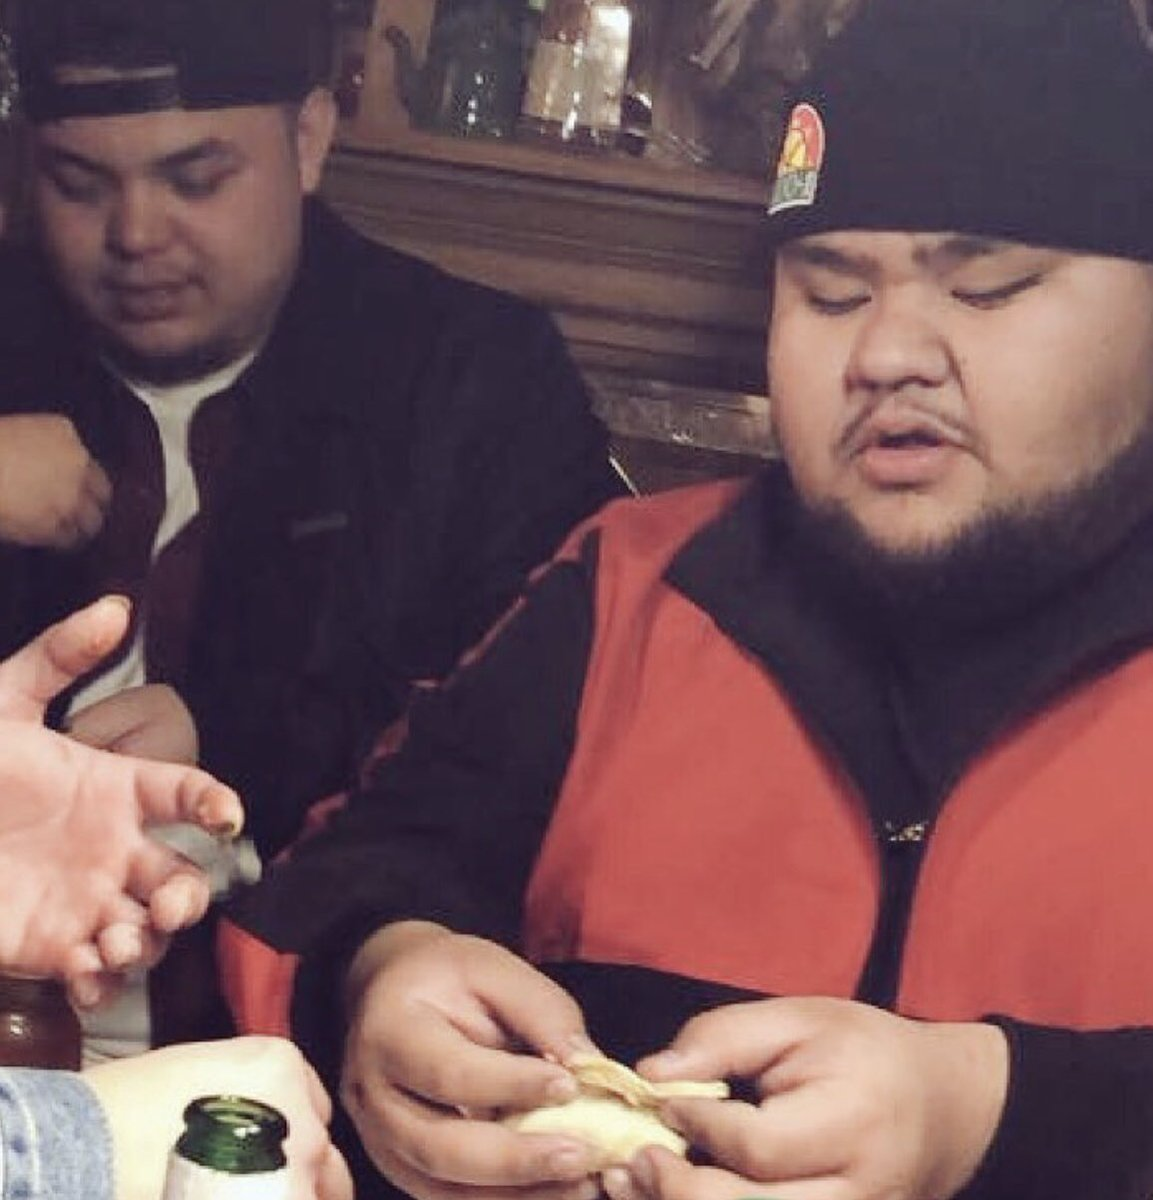 FREE SHOW IN AURORA TOMORROW AT 8PM I NEED PEOPLE TO GO AND VOTE FOR ME SO IF YOU DON'T GOT SHIT TO DO PULL UP TO THE COMEDY SHRINE IN AURORA. also here's a picture of me rolling up a taco like a blunt so I can eat it in one bite because chewing your food is overrated. Gracias. <br>http://pic.twitter.com/LuFqrd3GNj